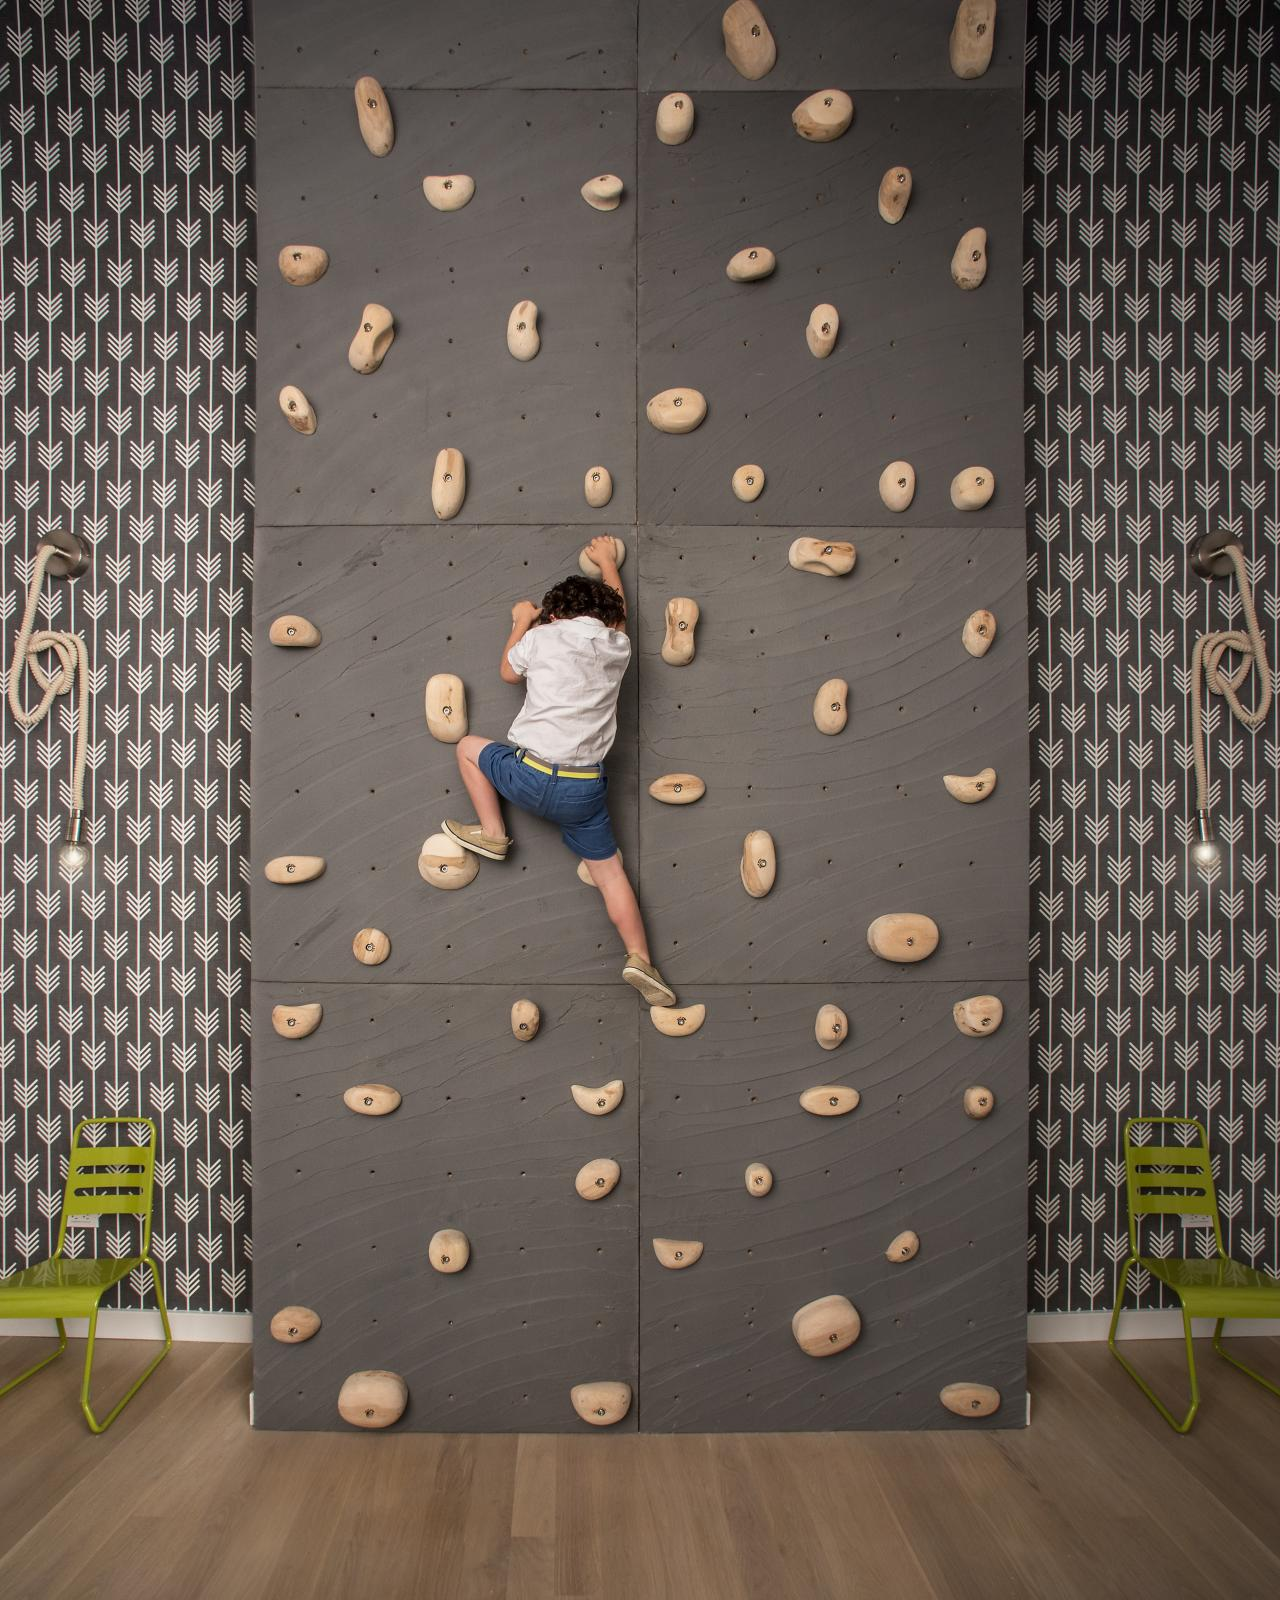 Walls For Kids 22 Awesome Rock Climbing Wall Ideas For Your Home Your